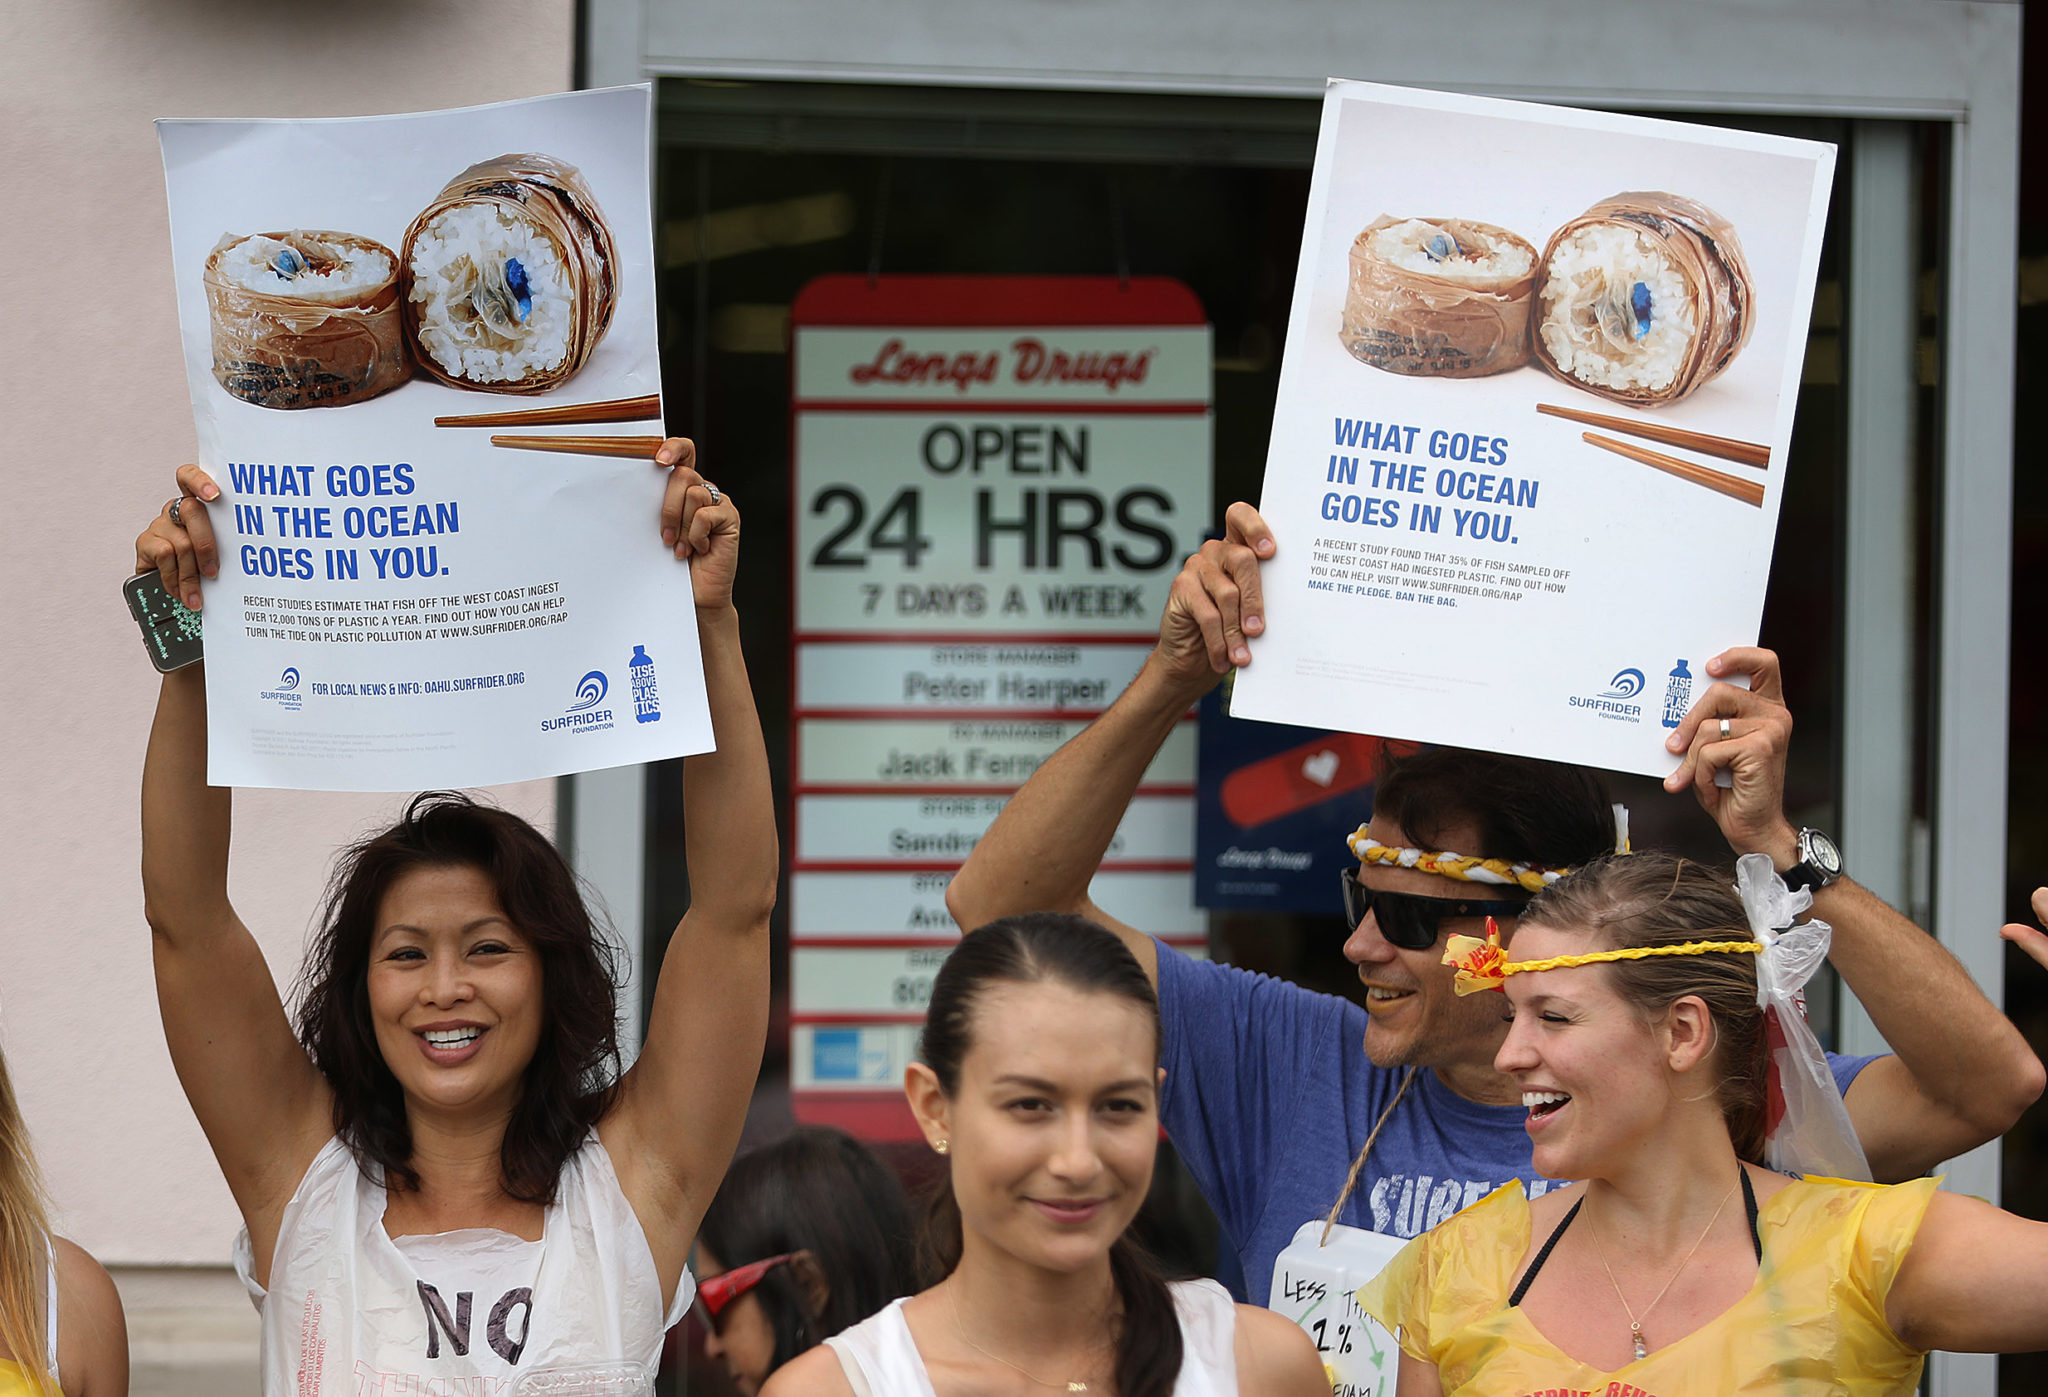 <p>The protesters targeted Longs, Wal-Mart and Nico&#8217;s Pier 38 restaurant.</p>